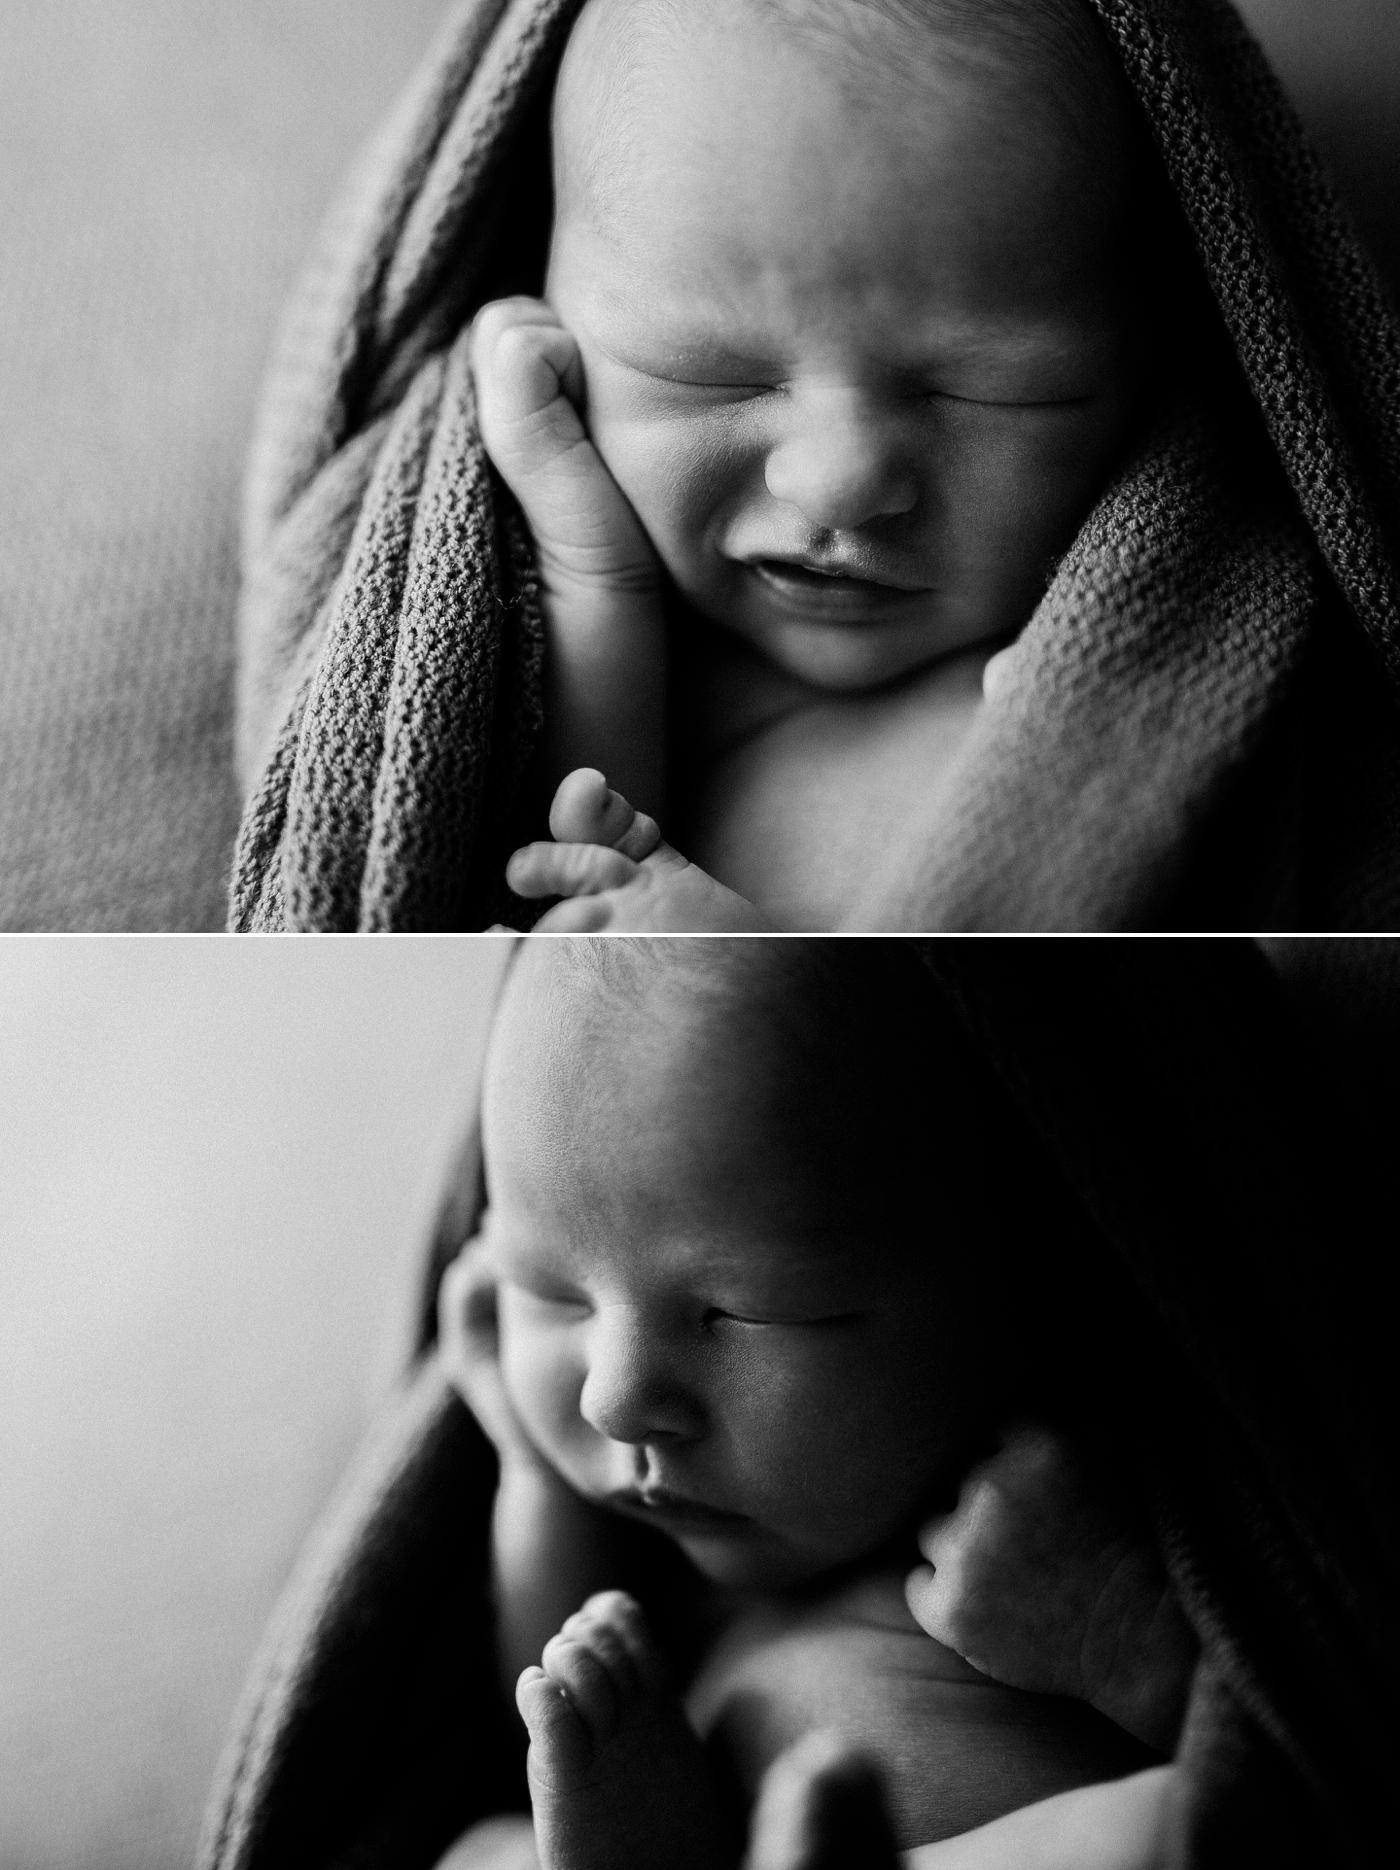 Sebastian - Natural light newborn photographer in Adelaide - Simple newborn photography - Katherine Schultz www.katherineschultzphotography.com 13